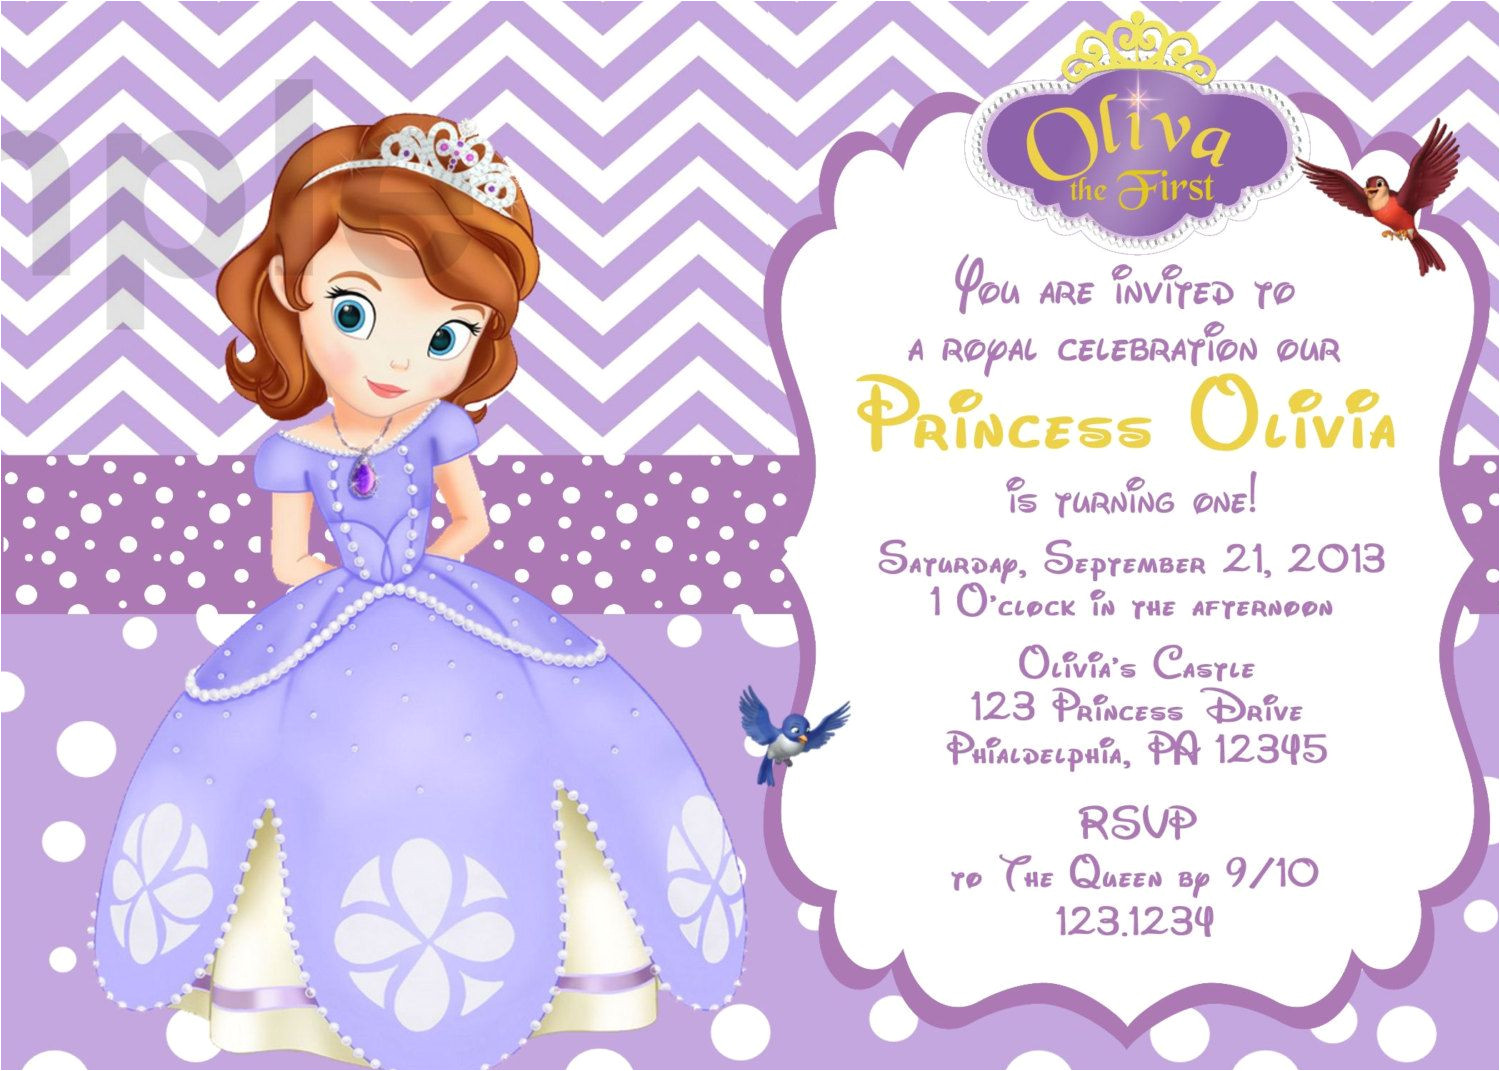 Sofia the First Free Invitation Templates Il Fullxfull 496664126 3ct1 Jpg 1500 1071 Princess